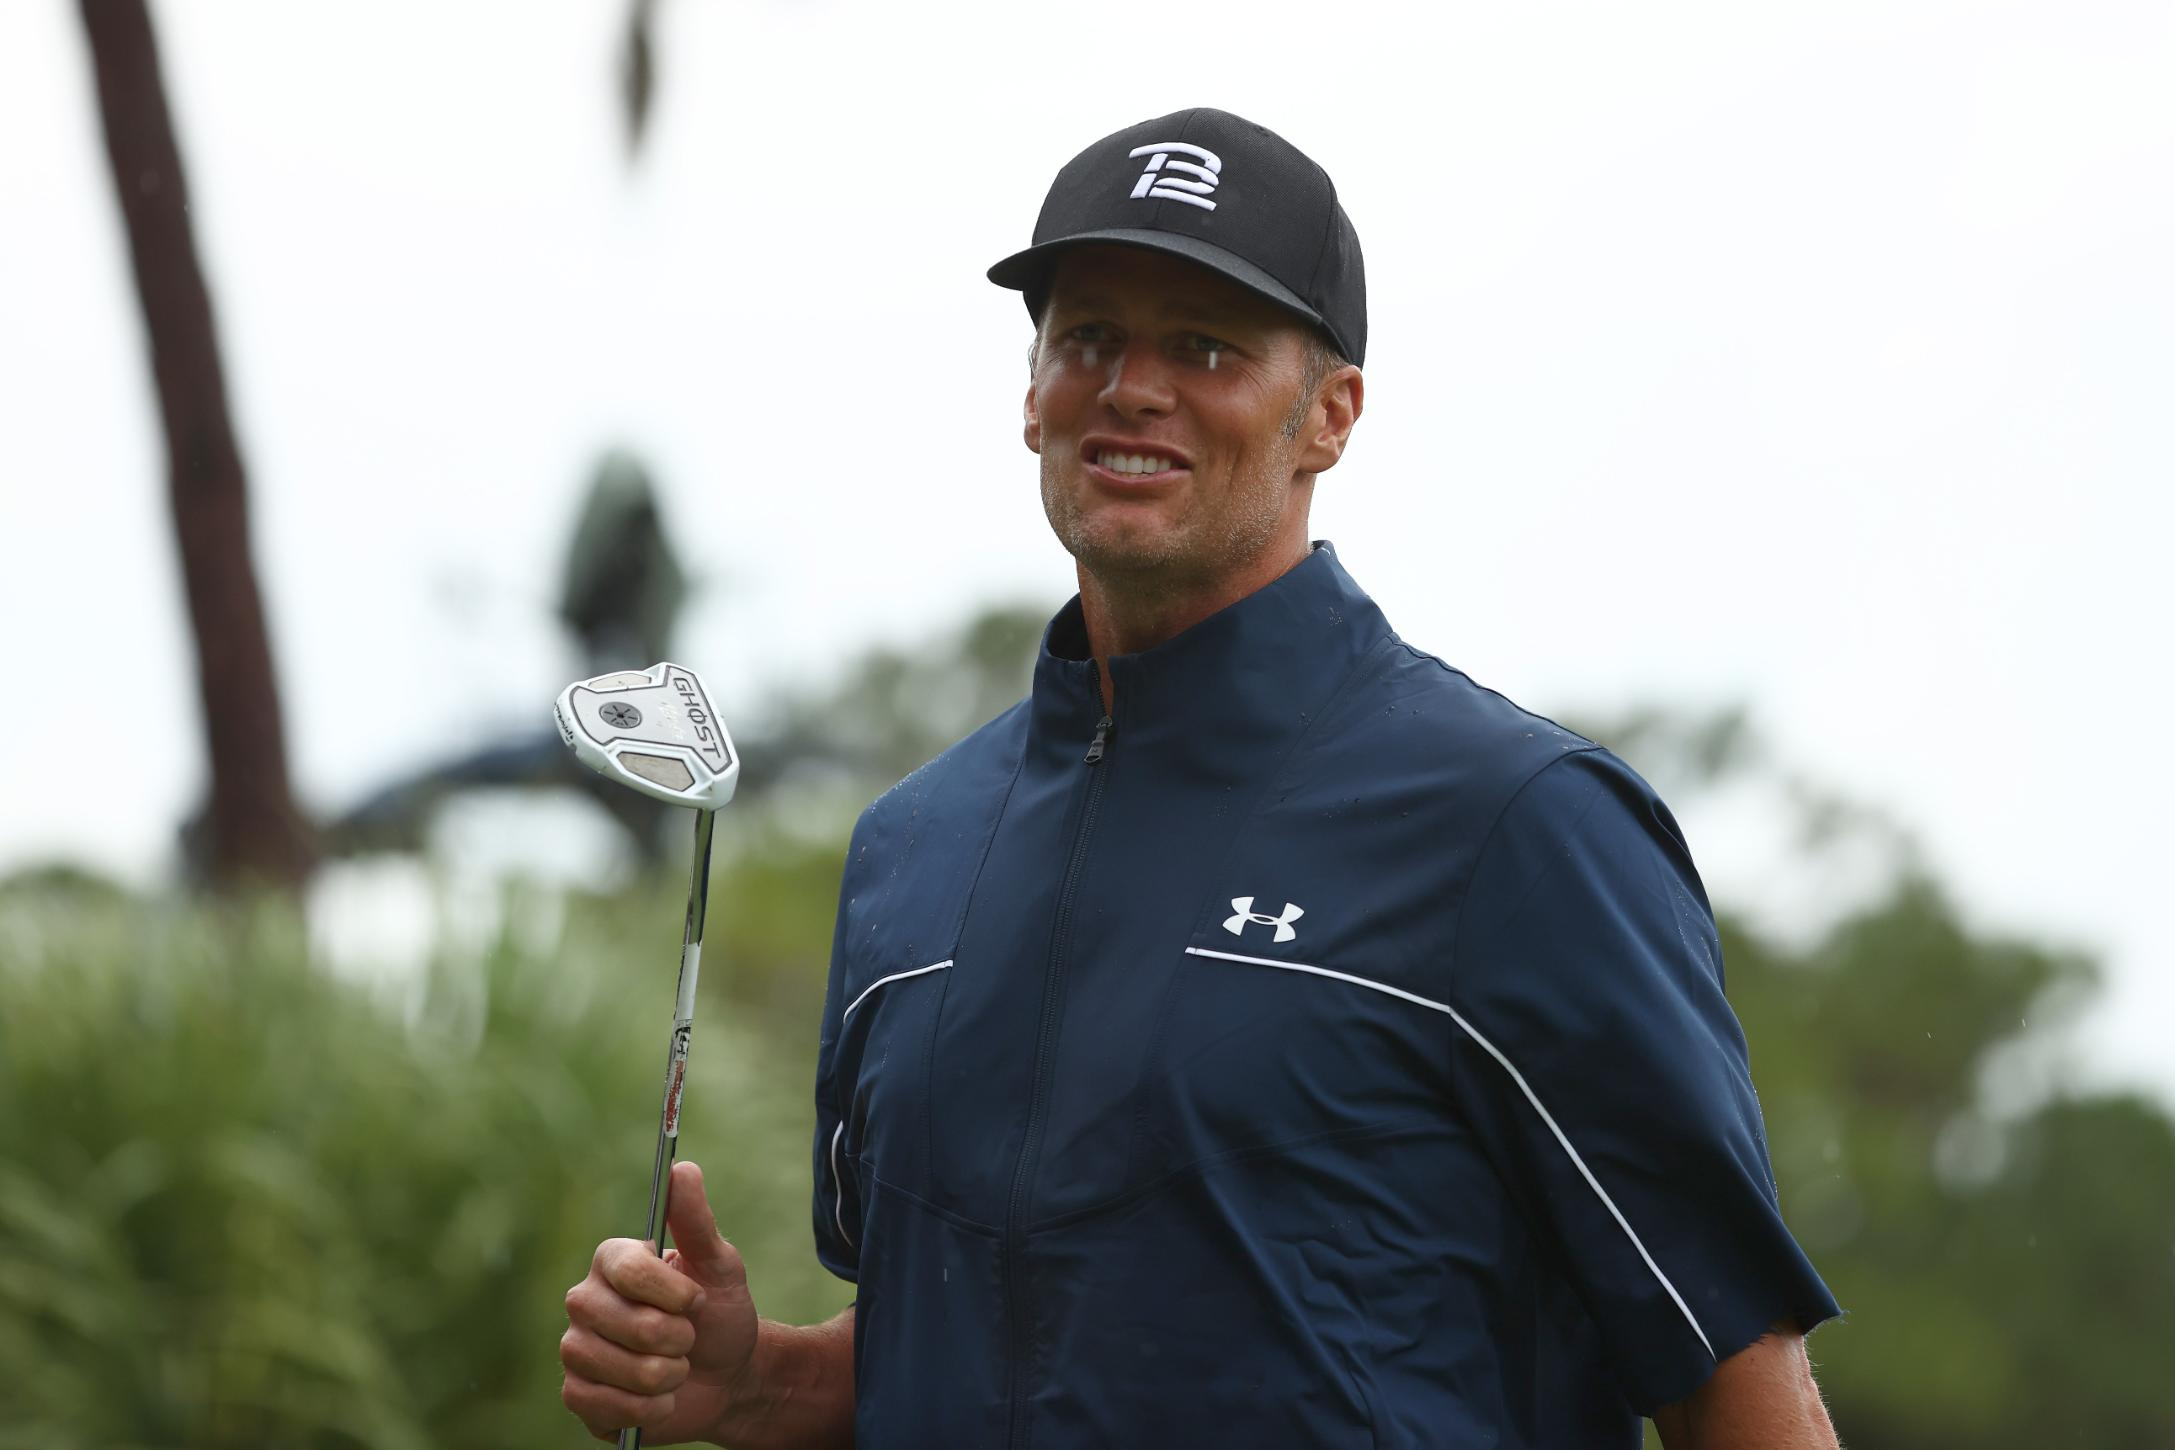 Tom Brady shows he's human as Tiger Woods backs up trash talk at 'Champions for Charity' golf match